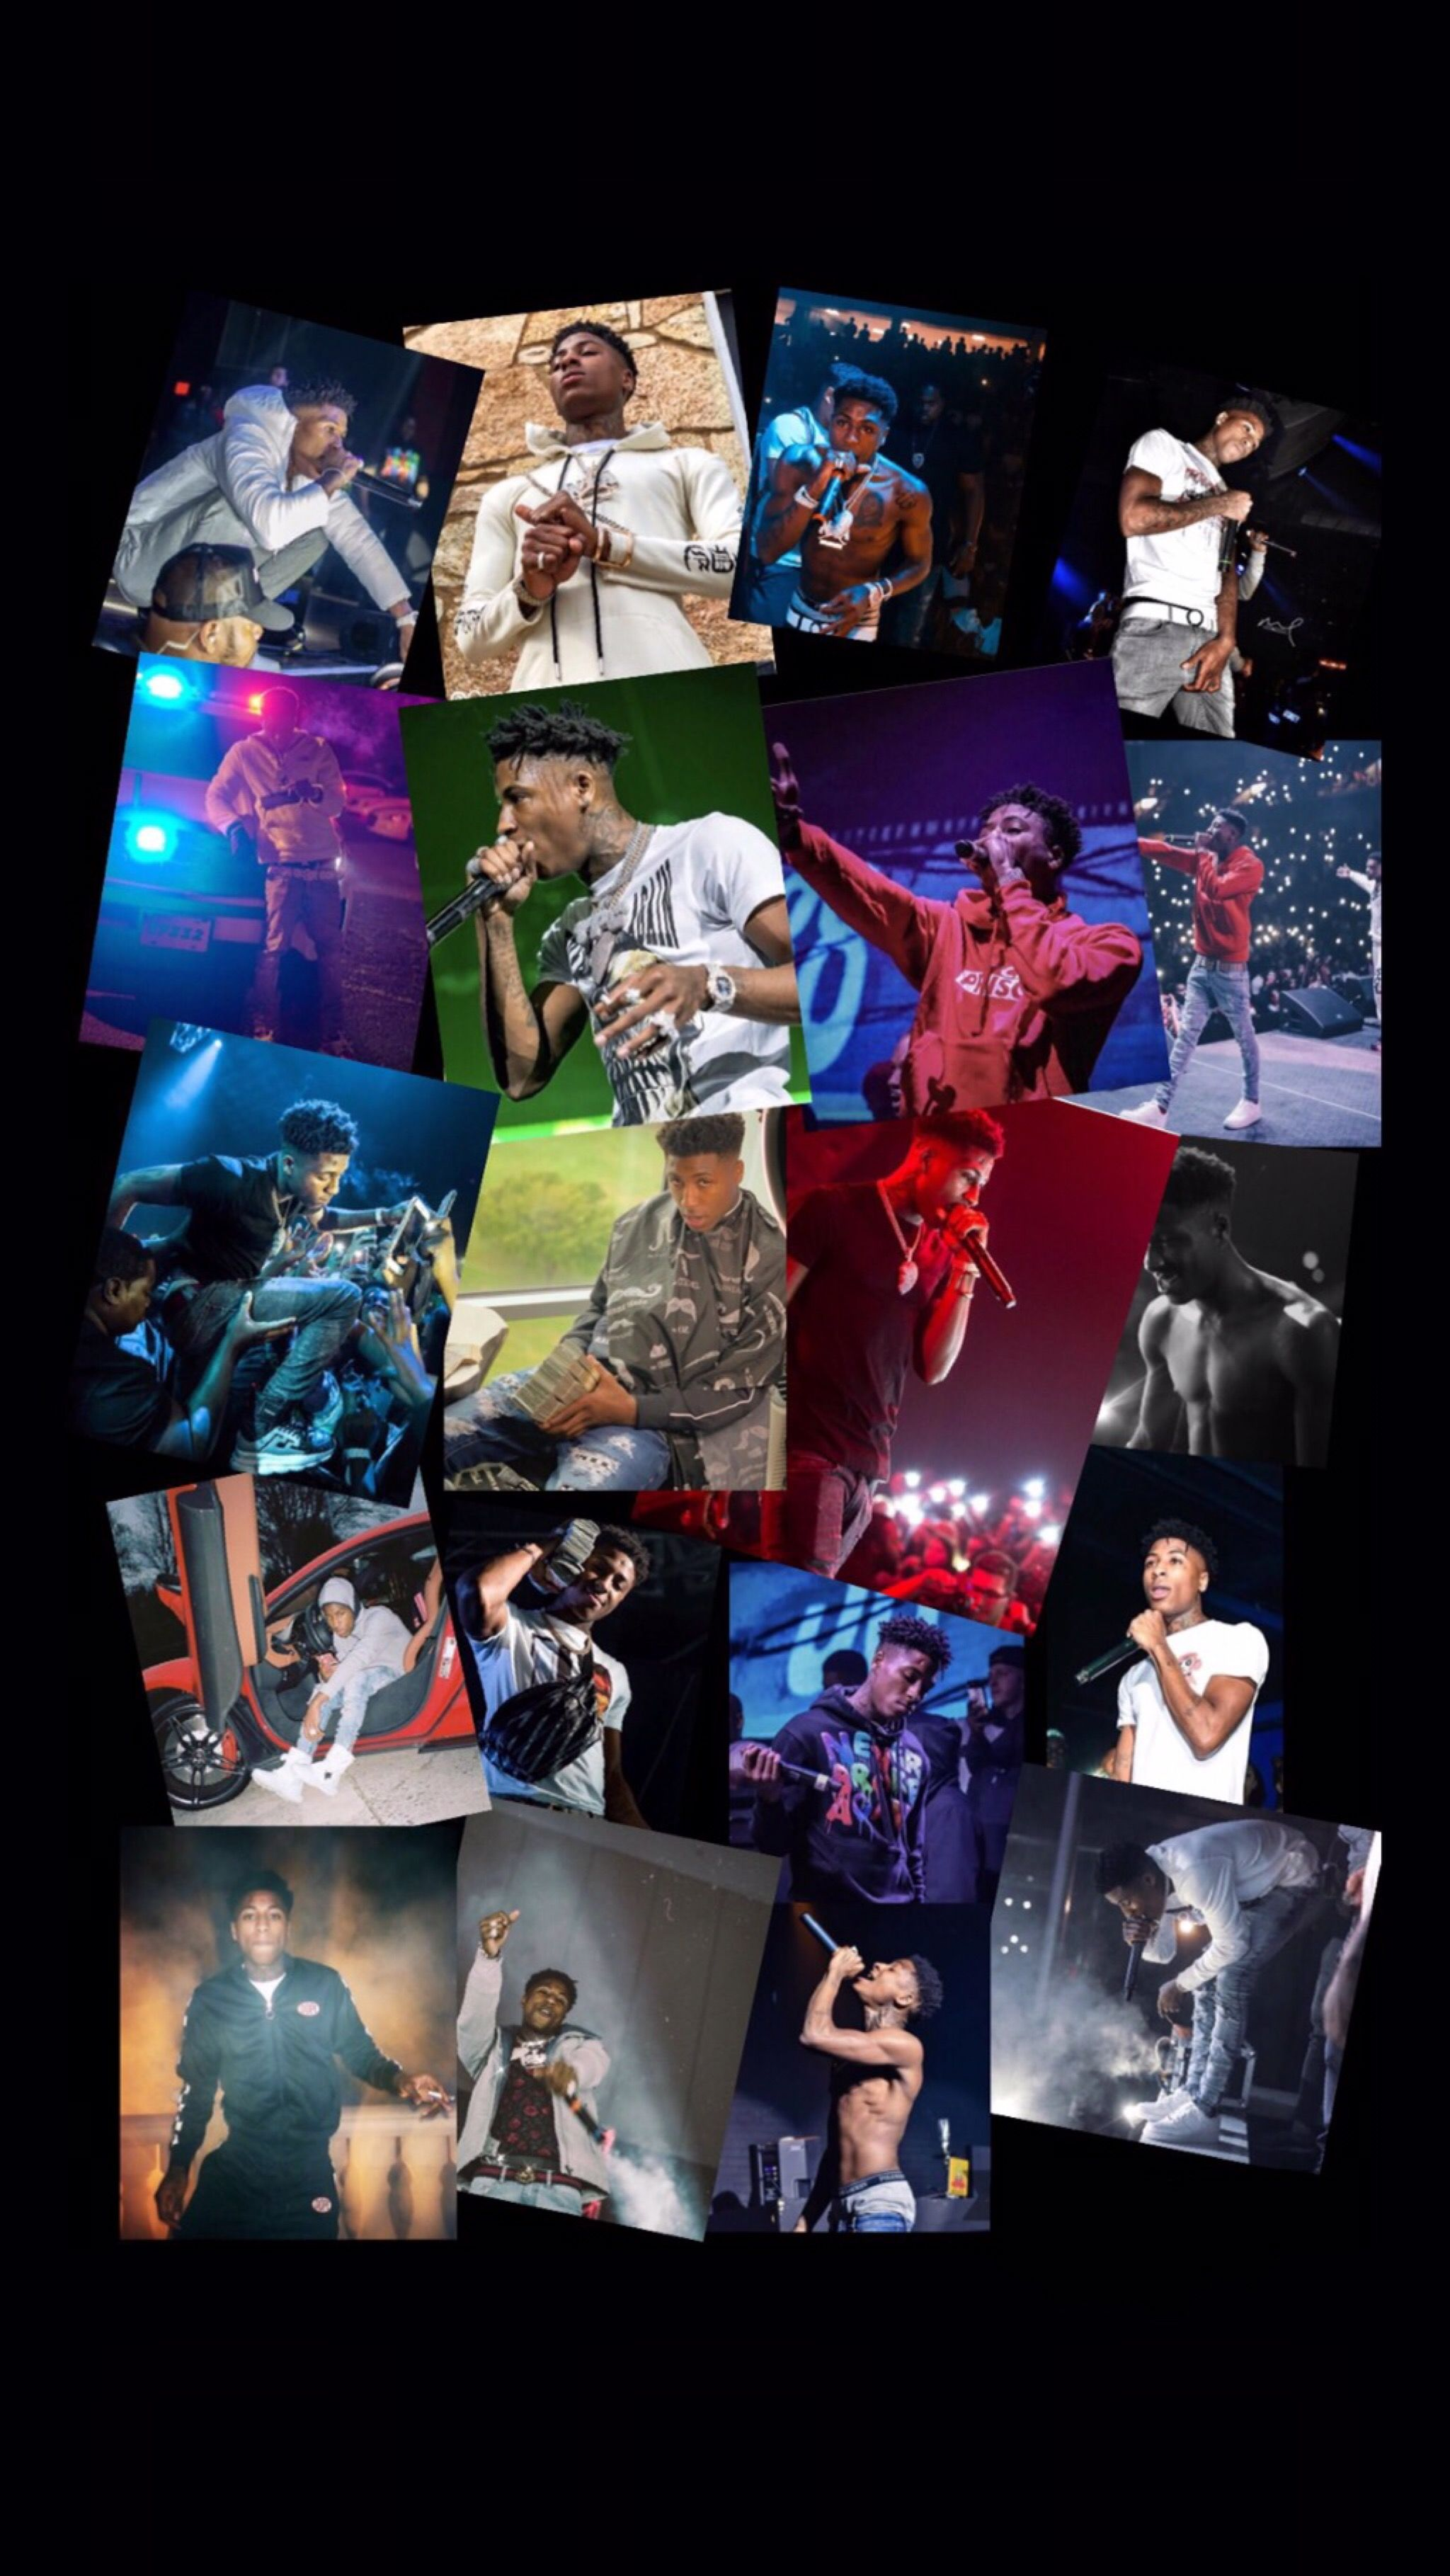 Iphone Nba Youngboy Collage - 2048x3638 ...